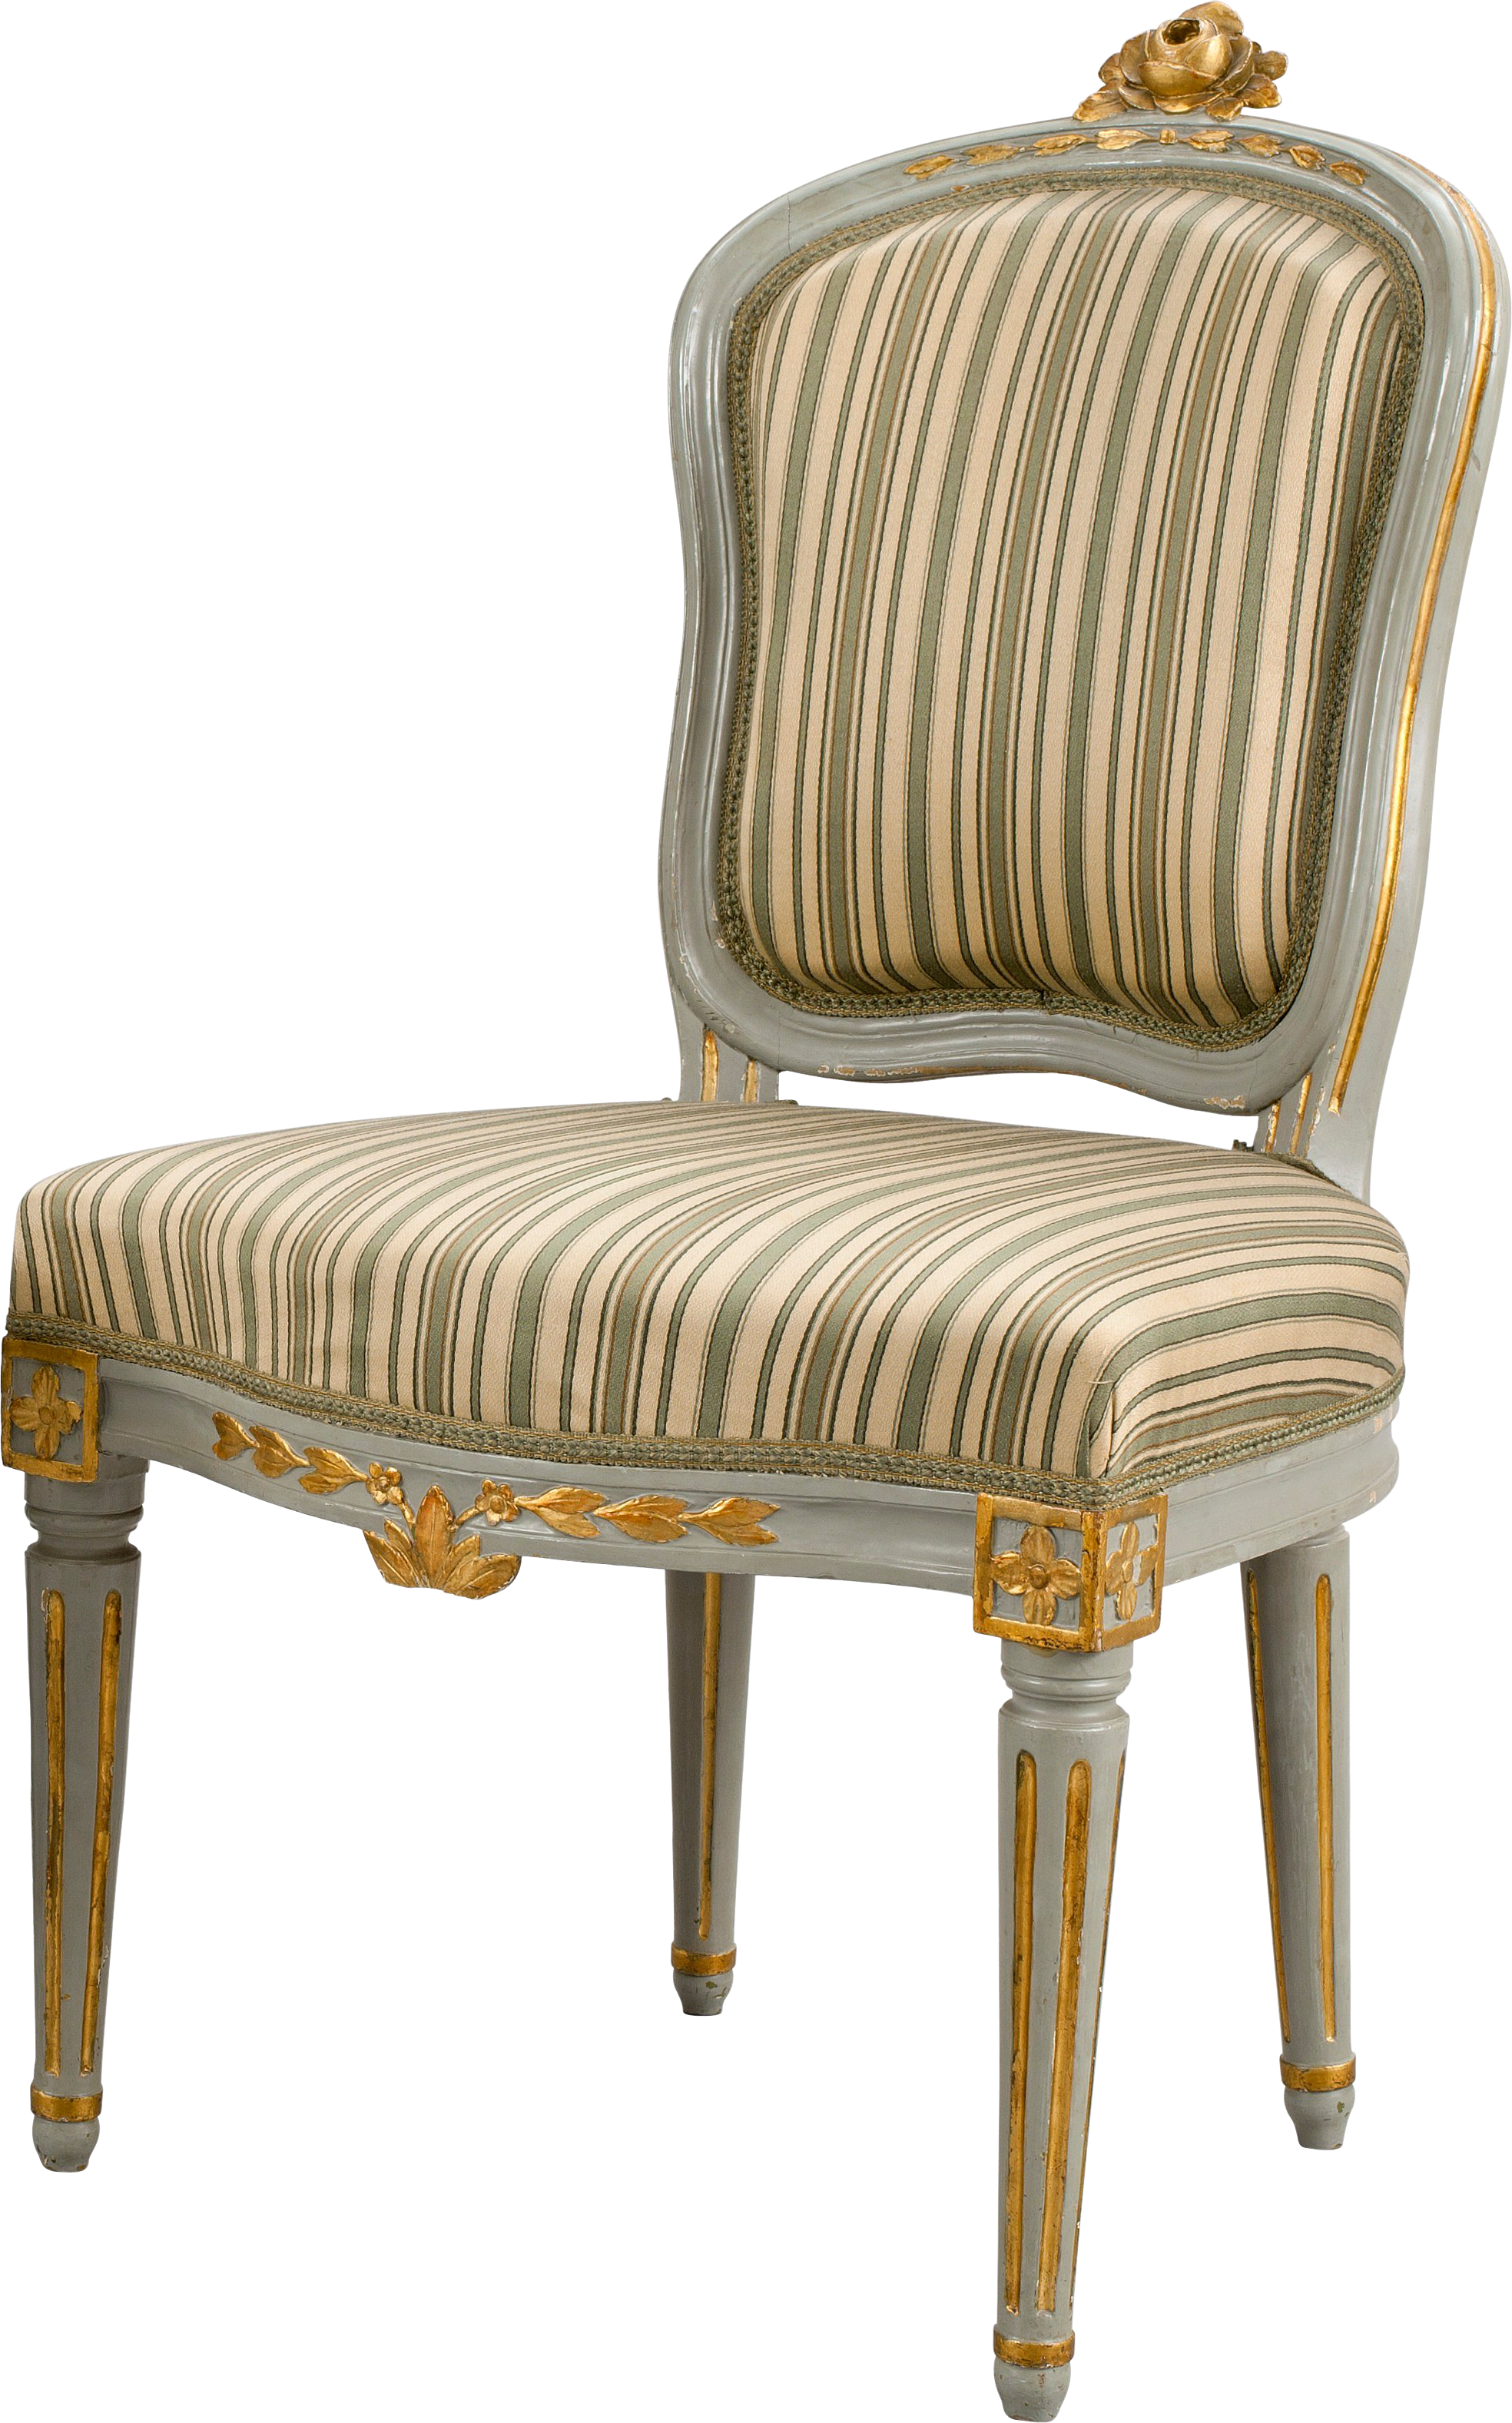 Chair Png image #40537